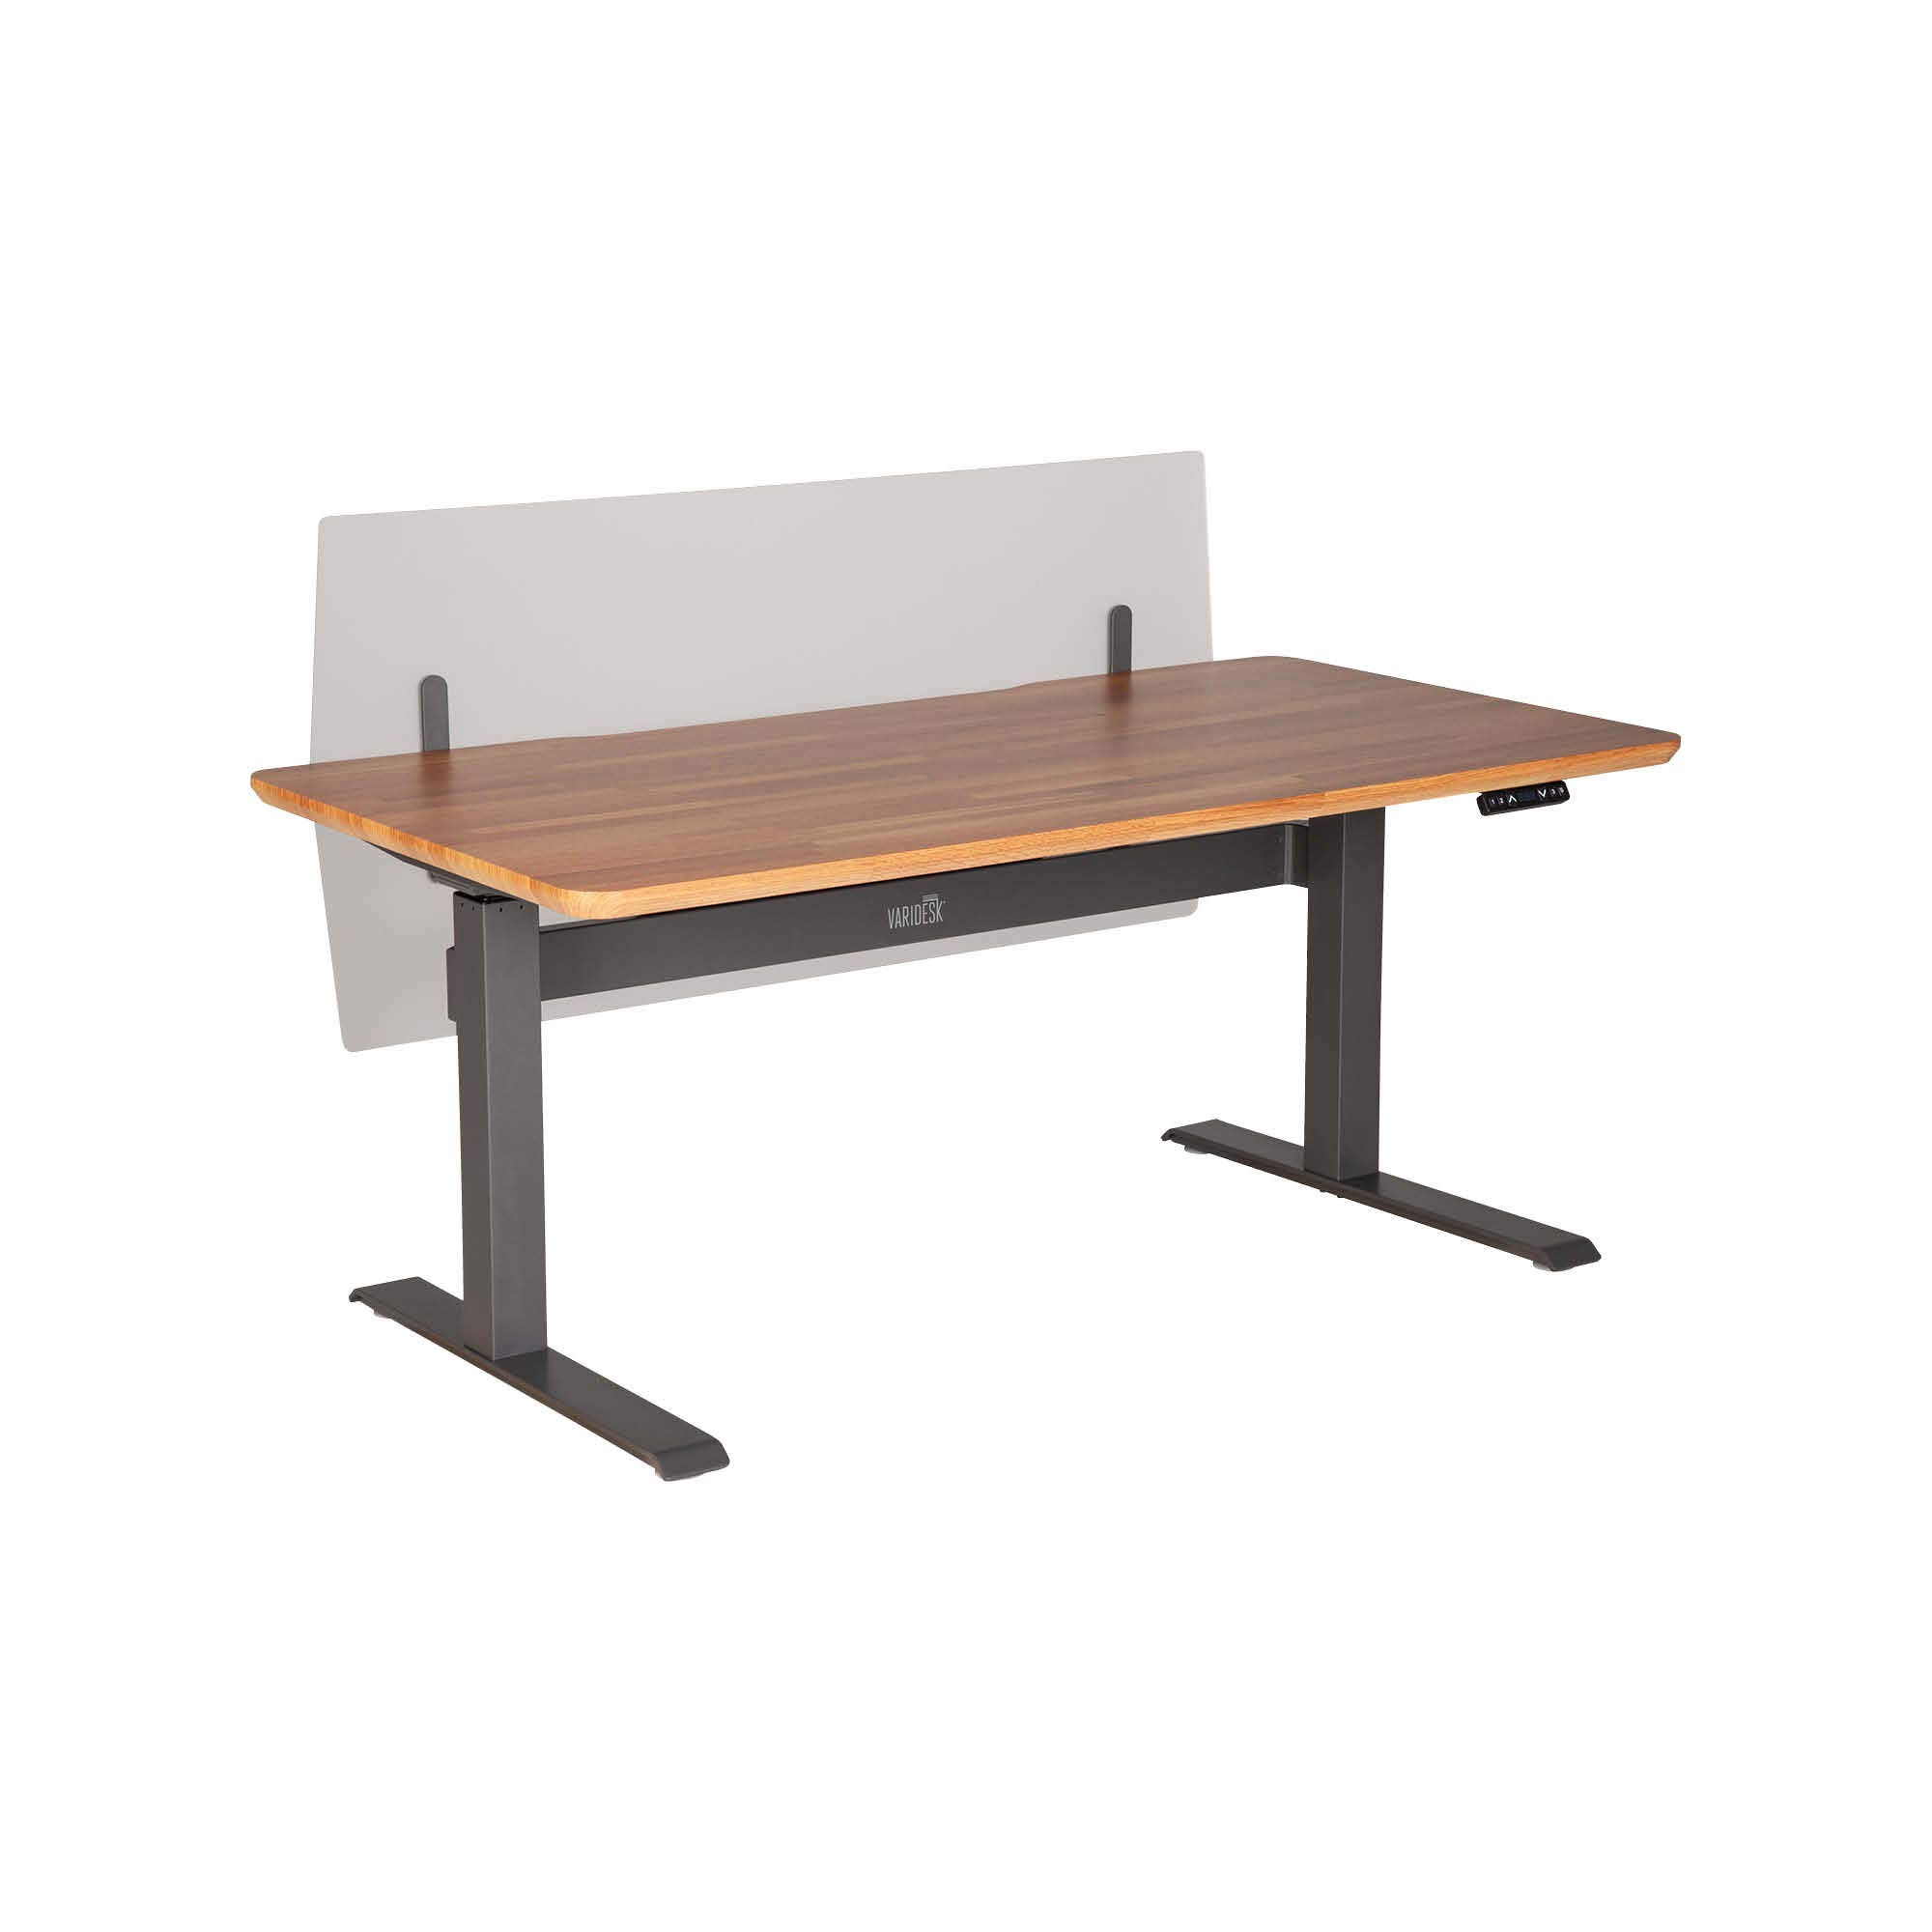 VARIDESK - ProDesk Electric Privacy and Modesty Panel 60 - Office Partition by VARIDESK (Image #1)